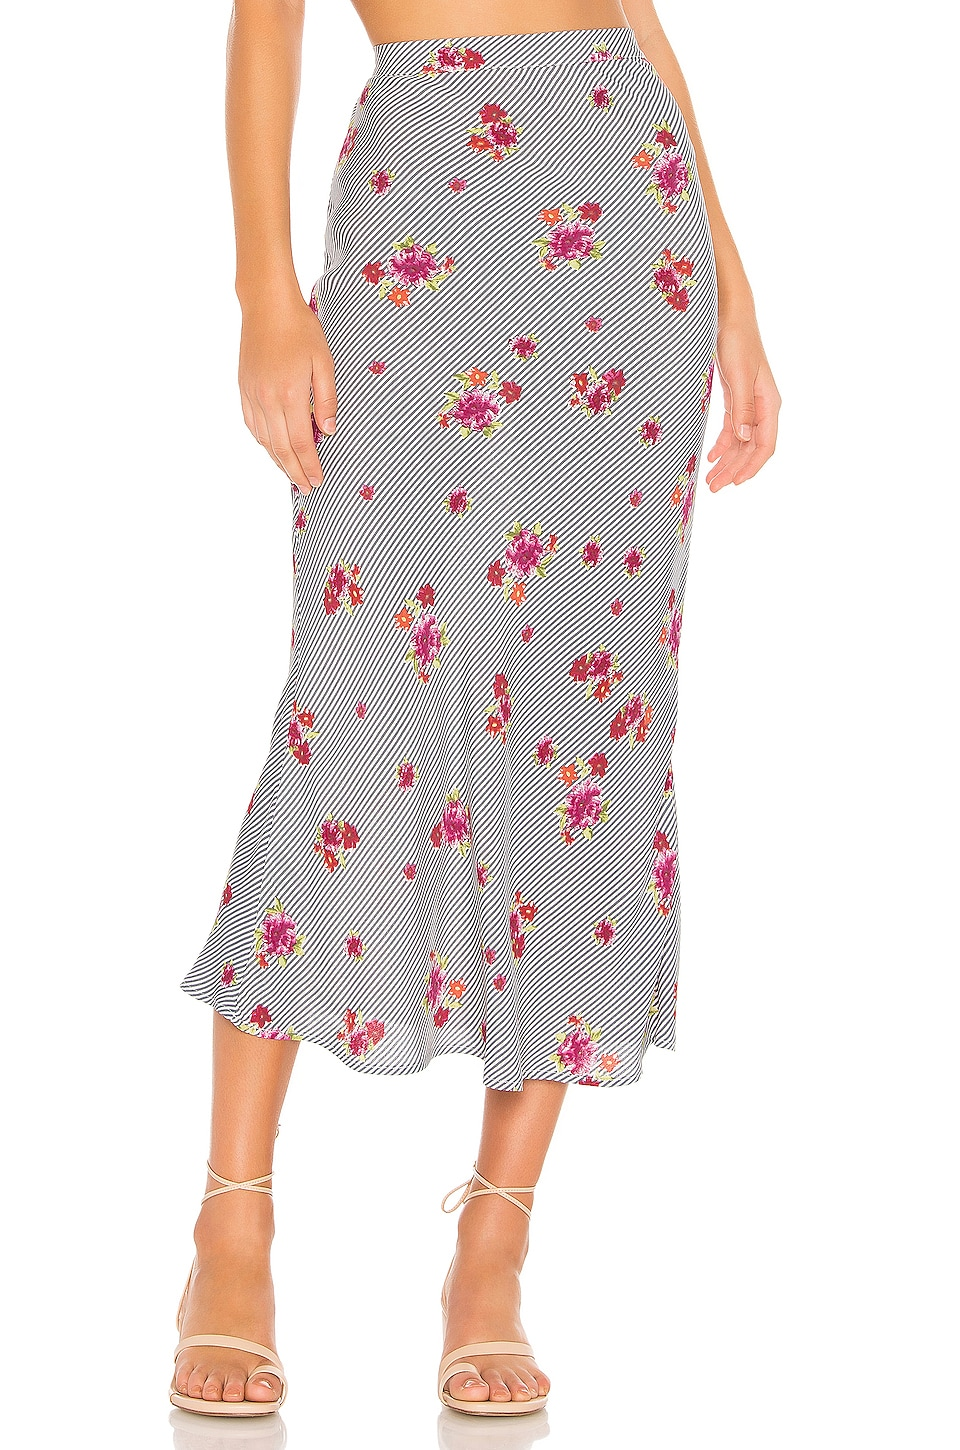 FLYNN SKYE Alice Skirt in Moon River